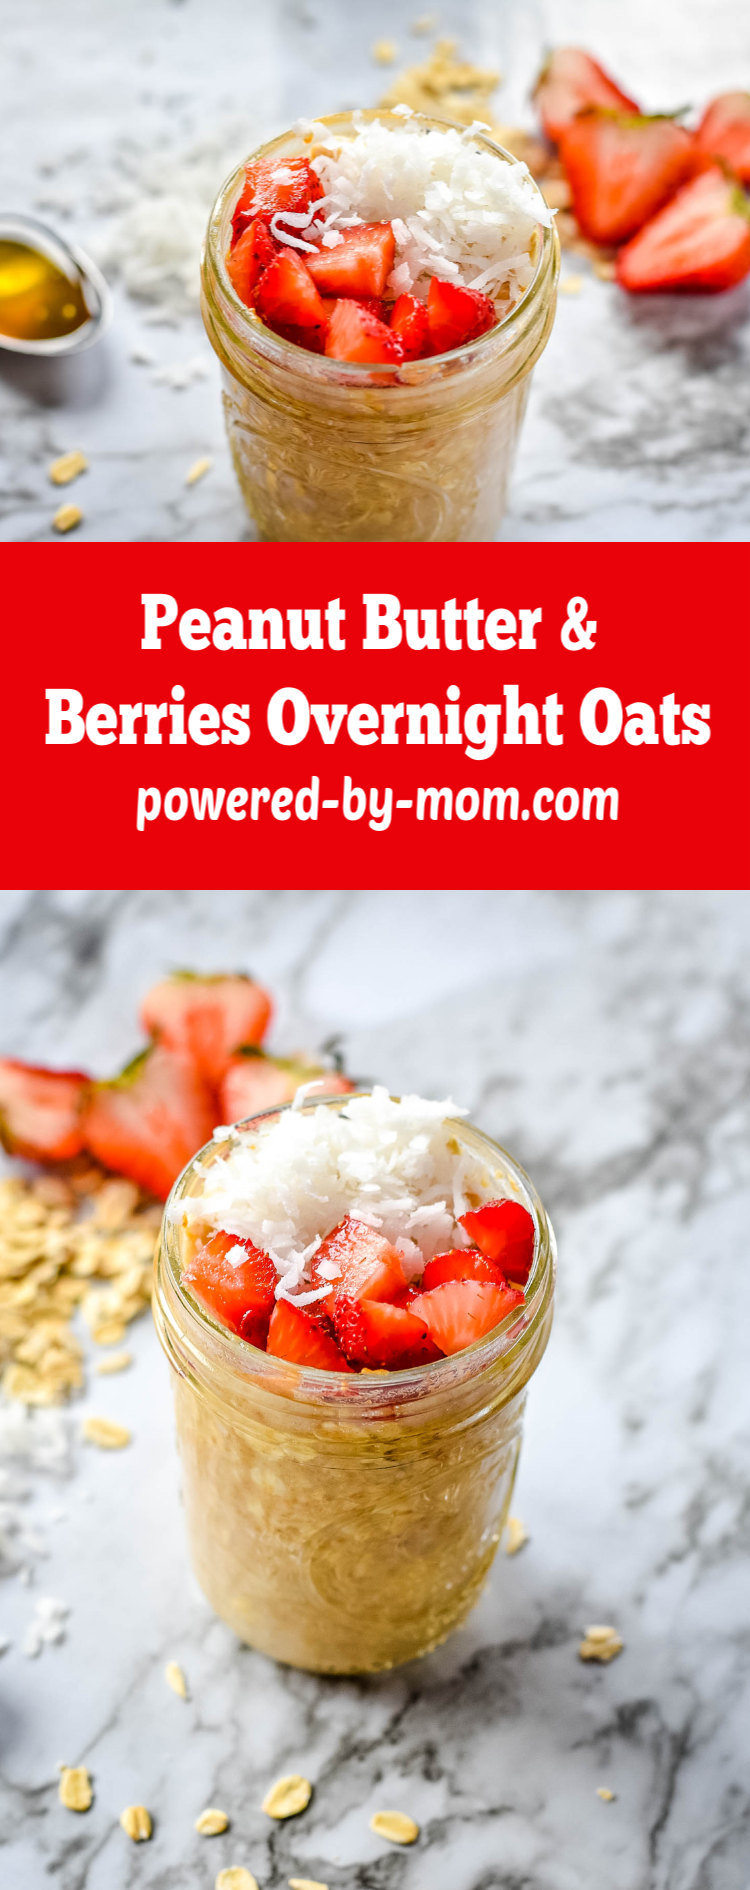 Simple Overnight Oats with Peanut Butter & Berries